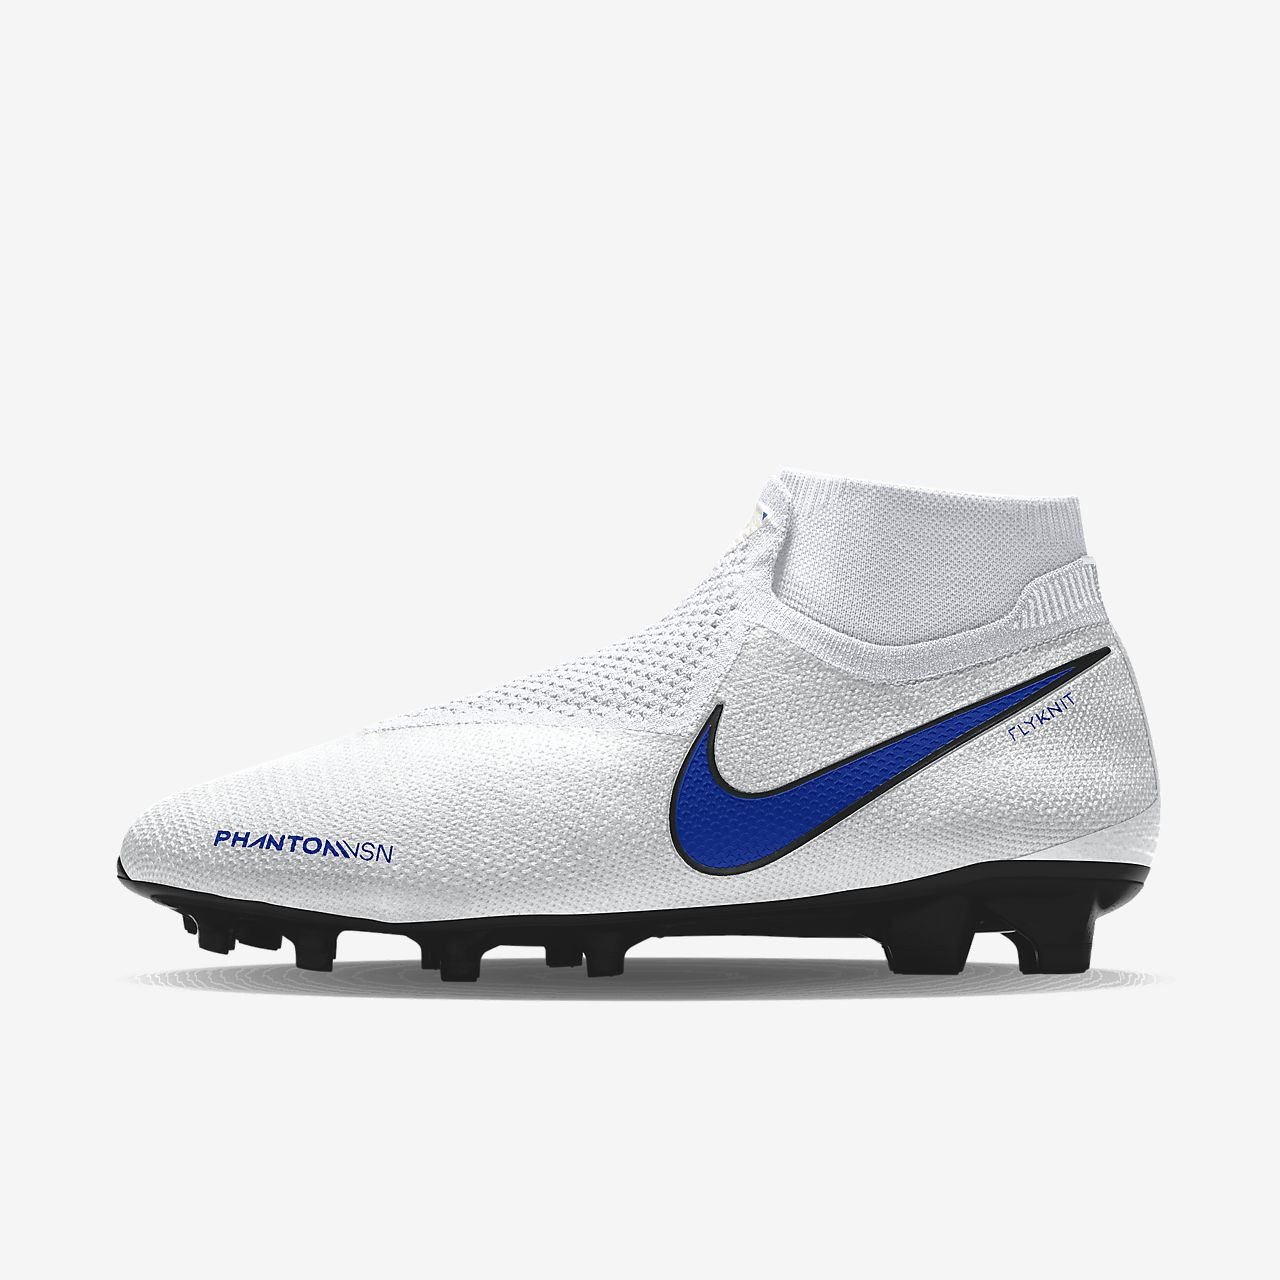 Nike Phantom Vision Elite FG By You Custom Firm-Ground Football Boot